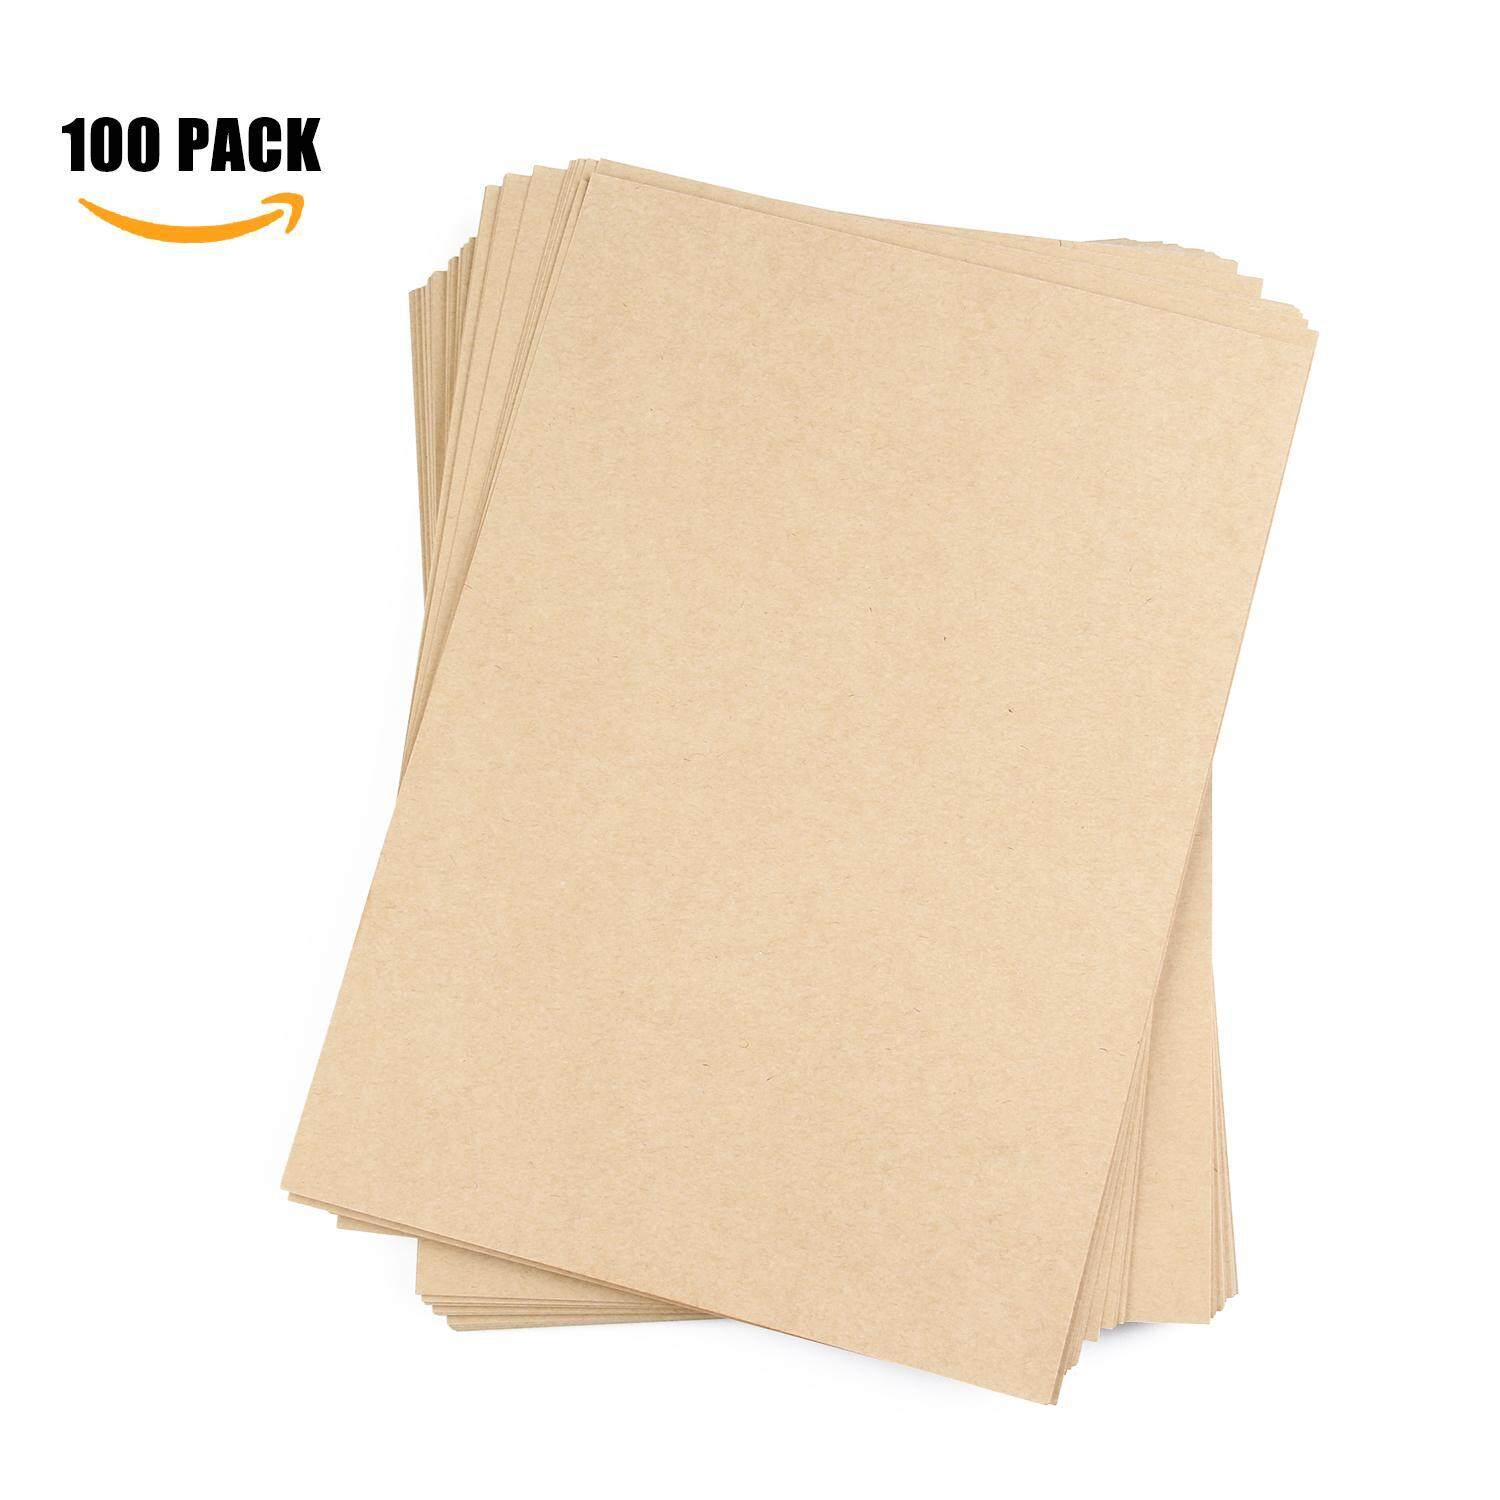 yazhang Kraft Paper, Pack Of 50 Natural Packing Wrapping Kraft Paper - 8.26x11.69inch - intl